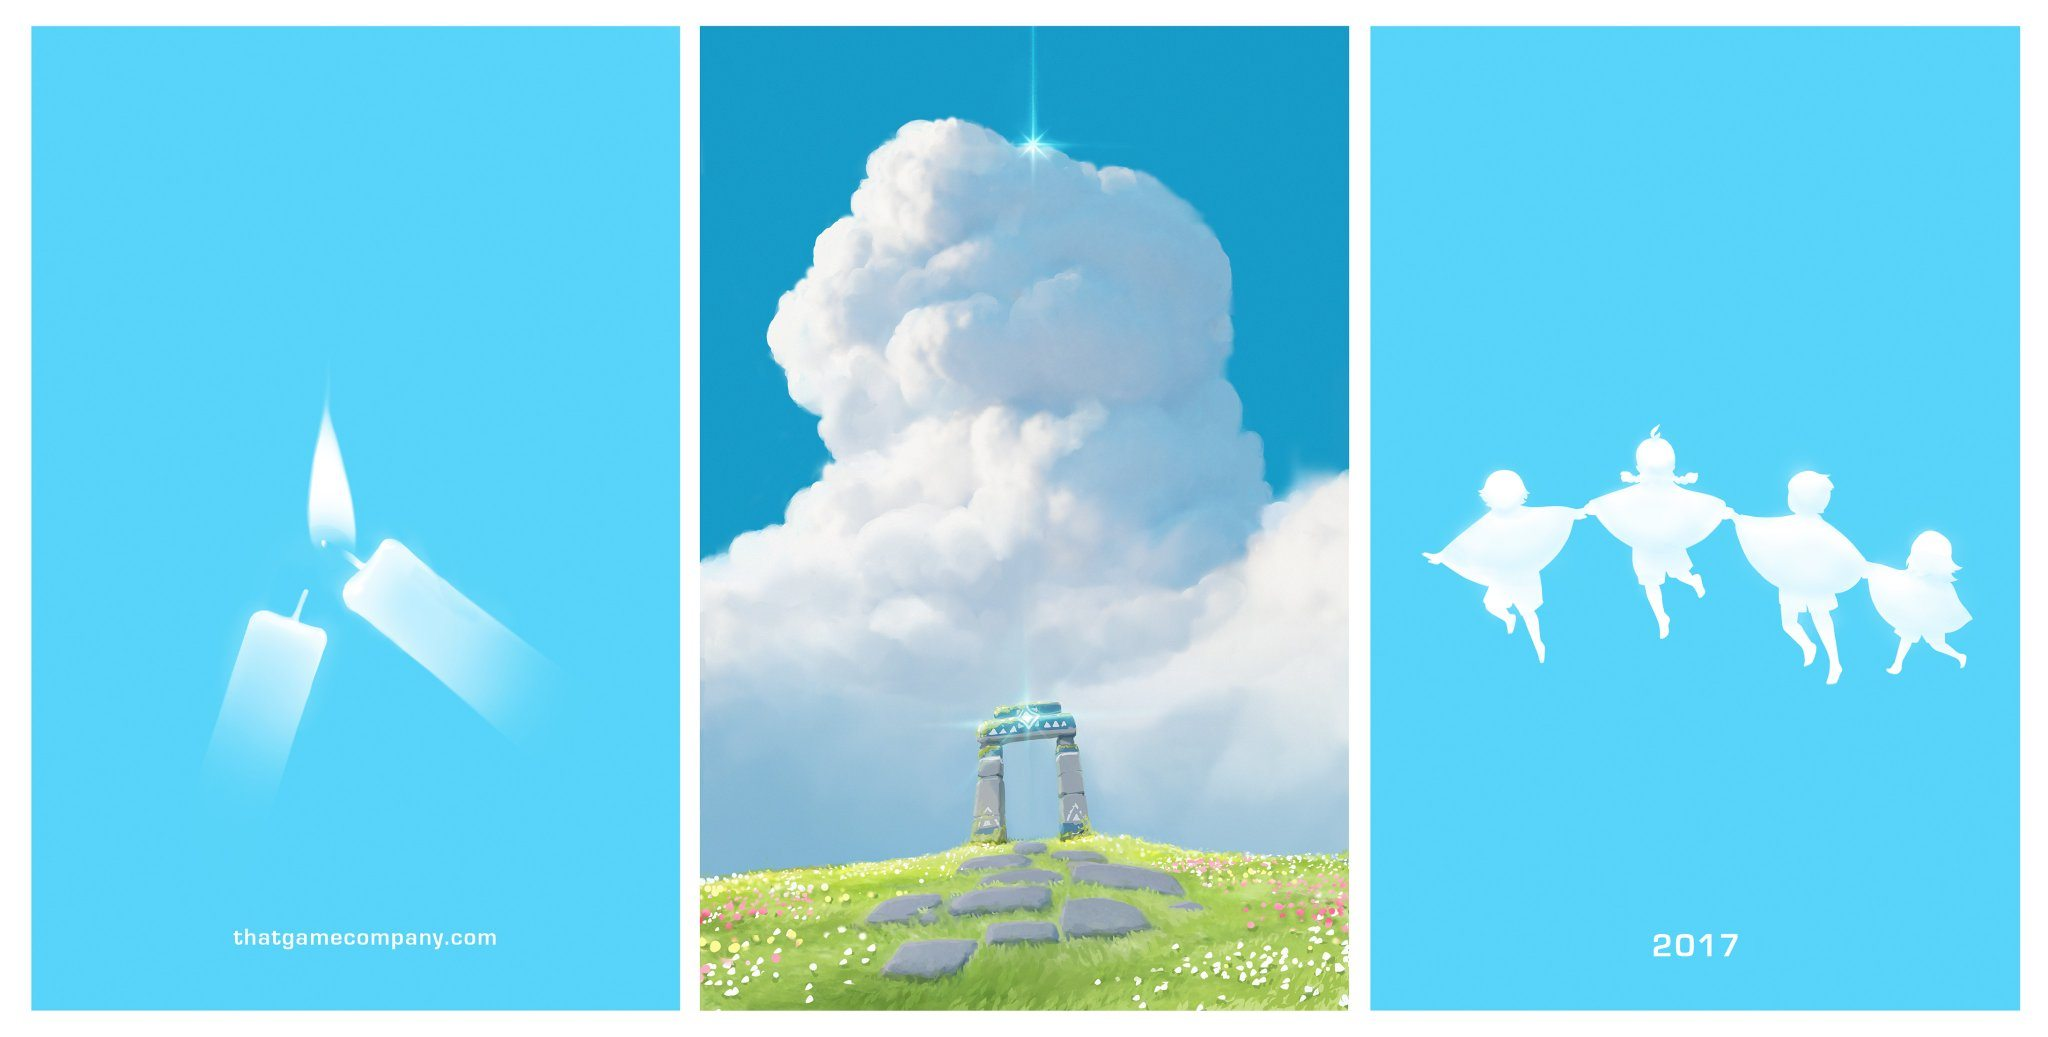 Teaser for the next game from thatgamecompany